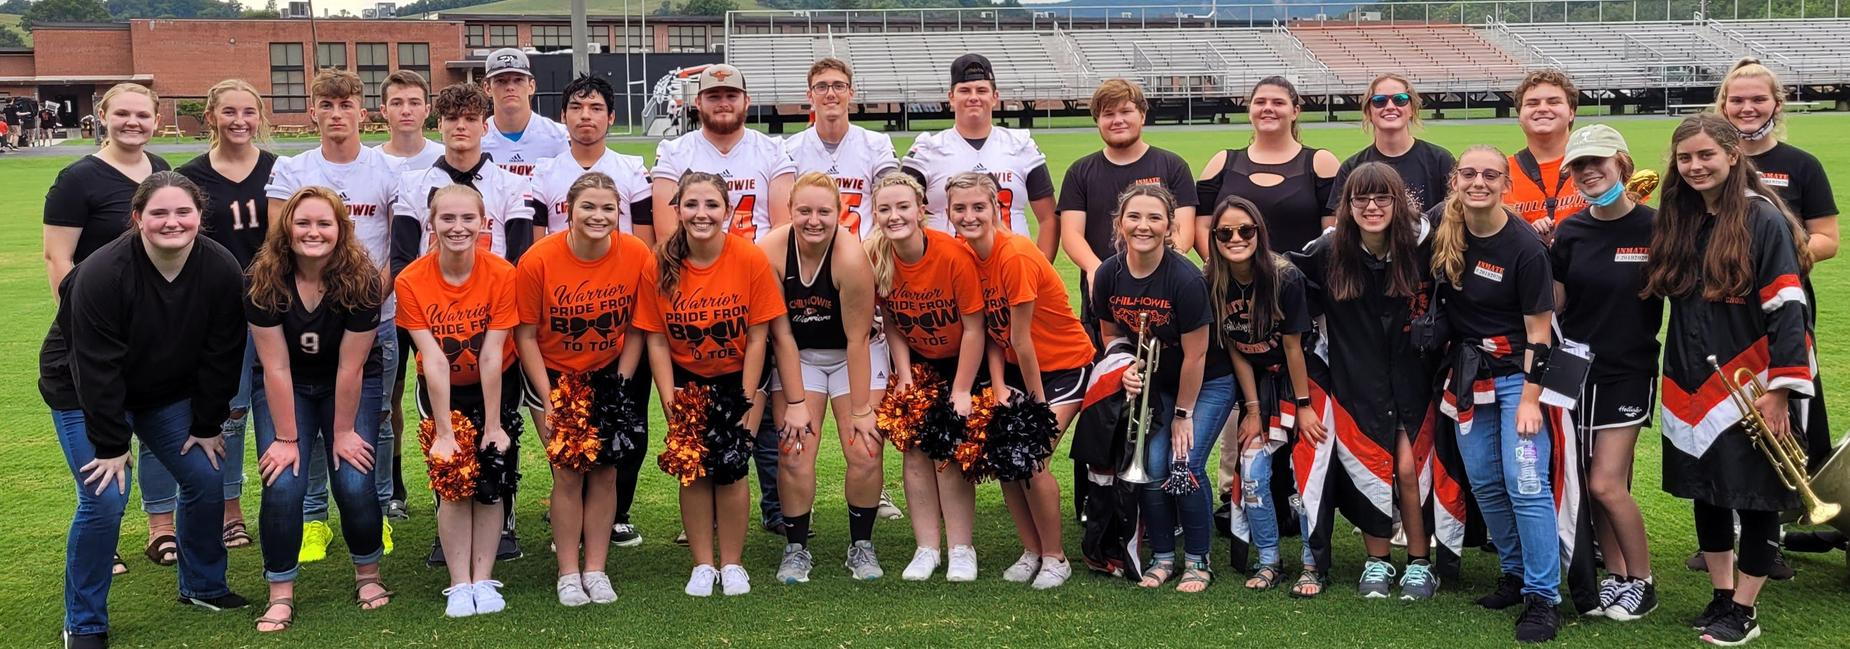 Chilhowie HS Seniors (volleyball, cheer, football, cross country,  band)